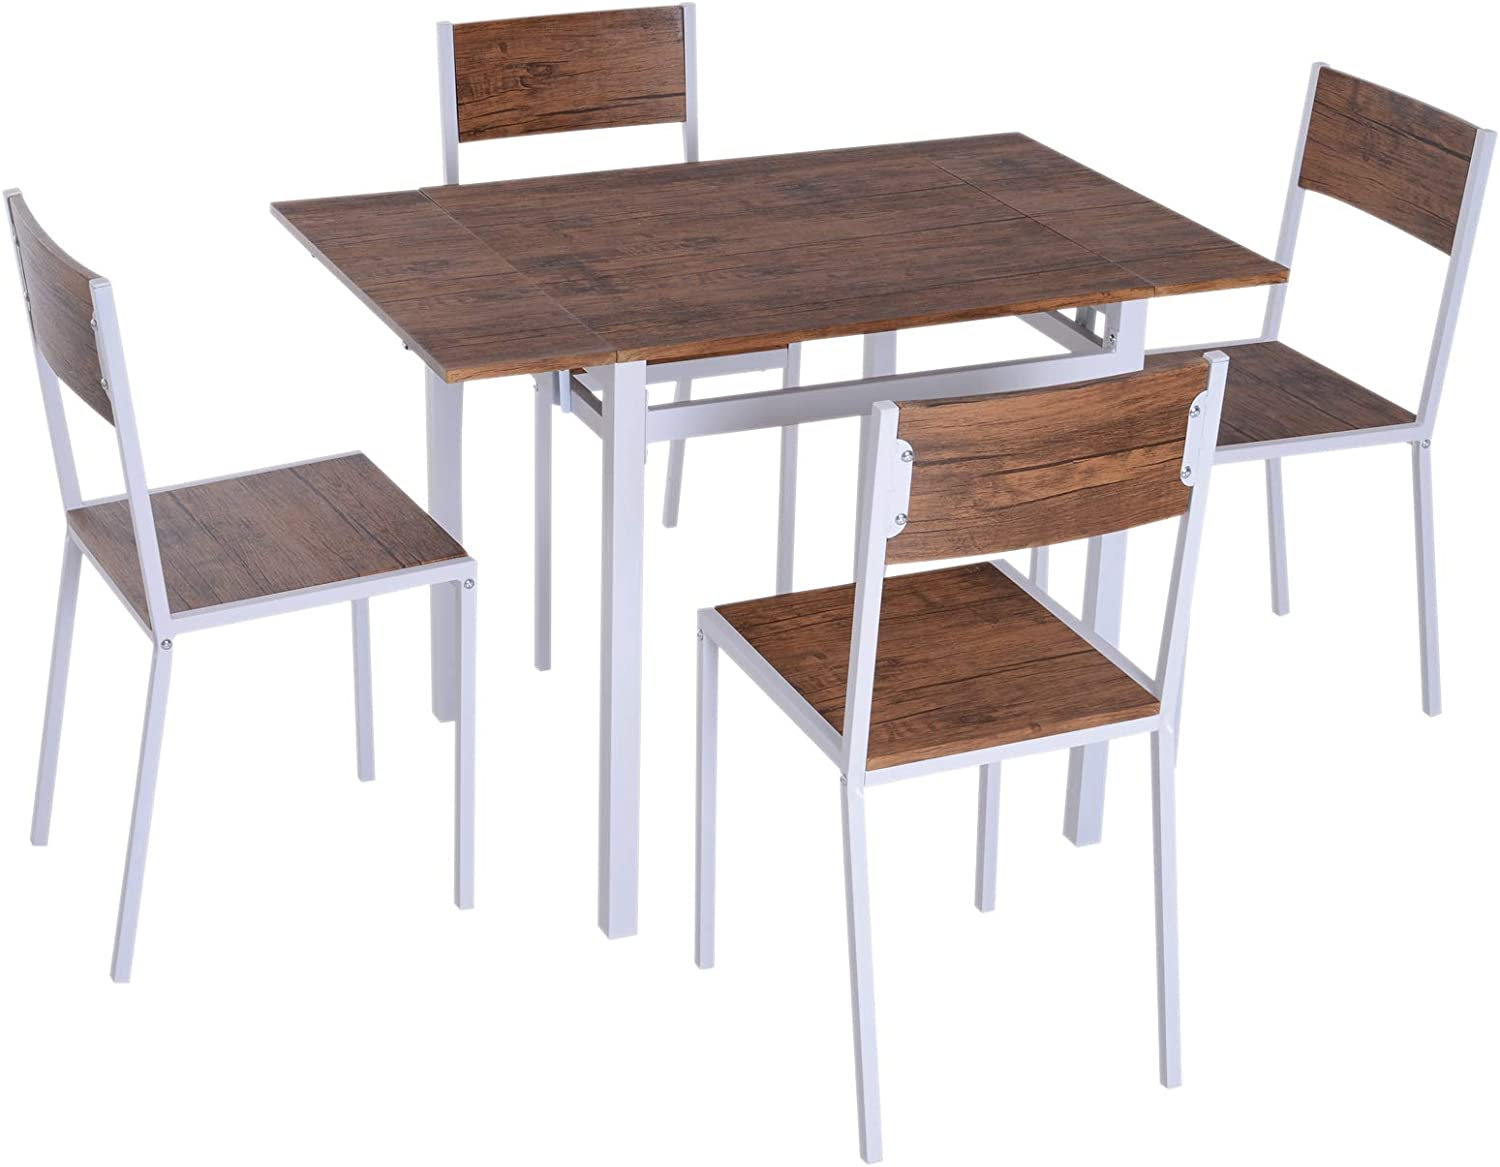 HOMCOM 5 Piece Drop Leaf Counter Height Dining Table and Chairs Set - Walnut/White